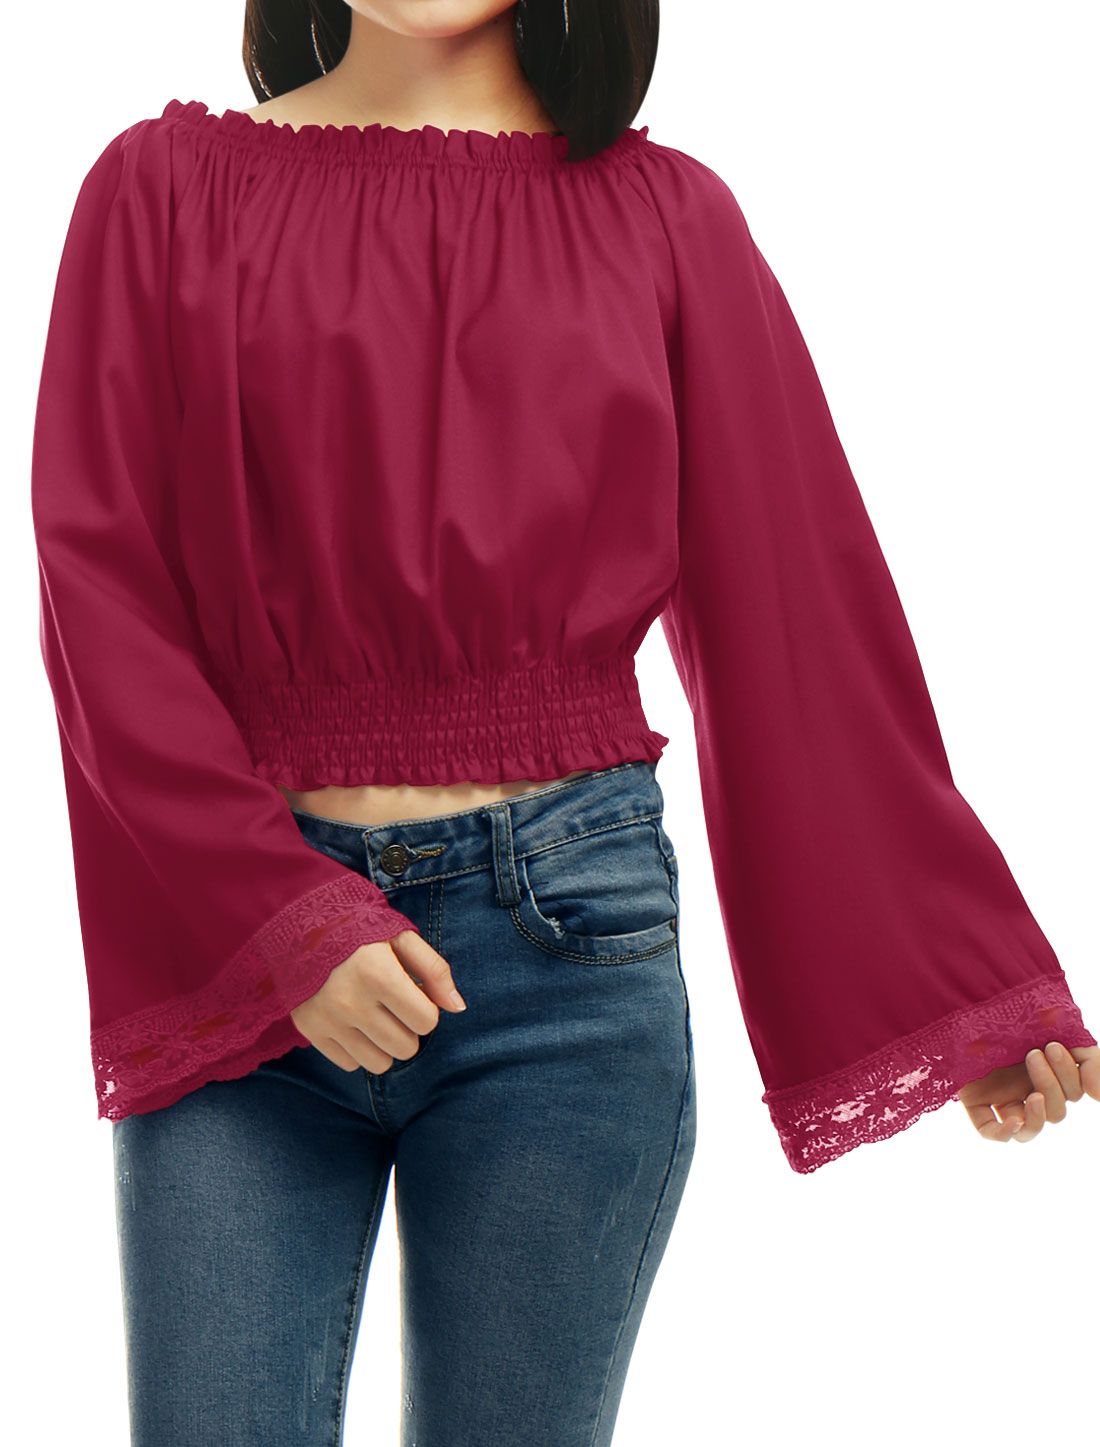 Women-Off-Shoulder-Bell-Sleeves-Lace-Panel-Cuffs-Blouse